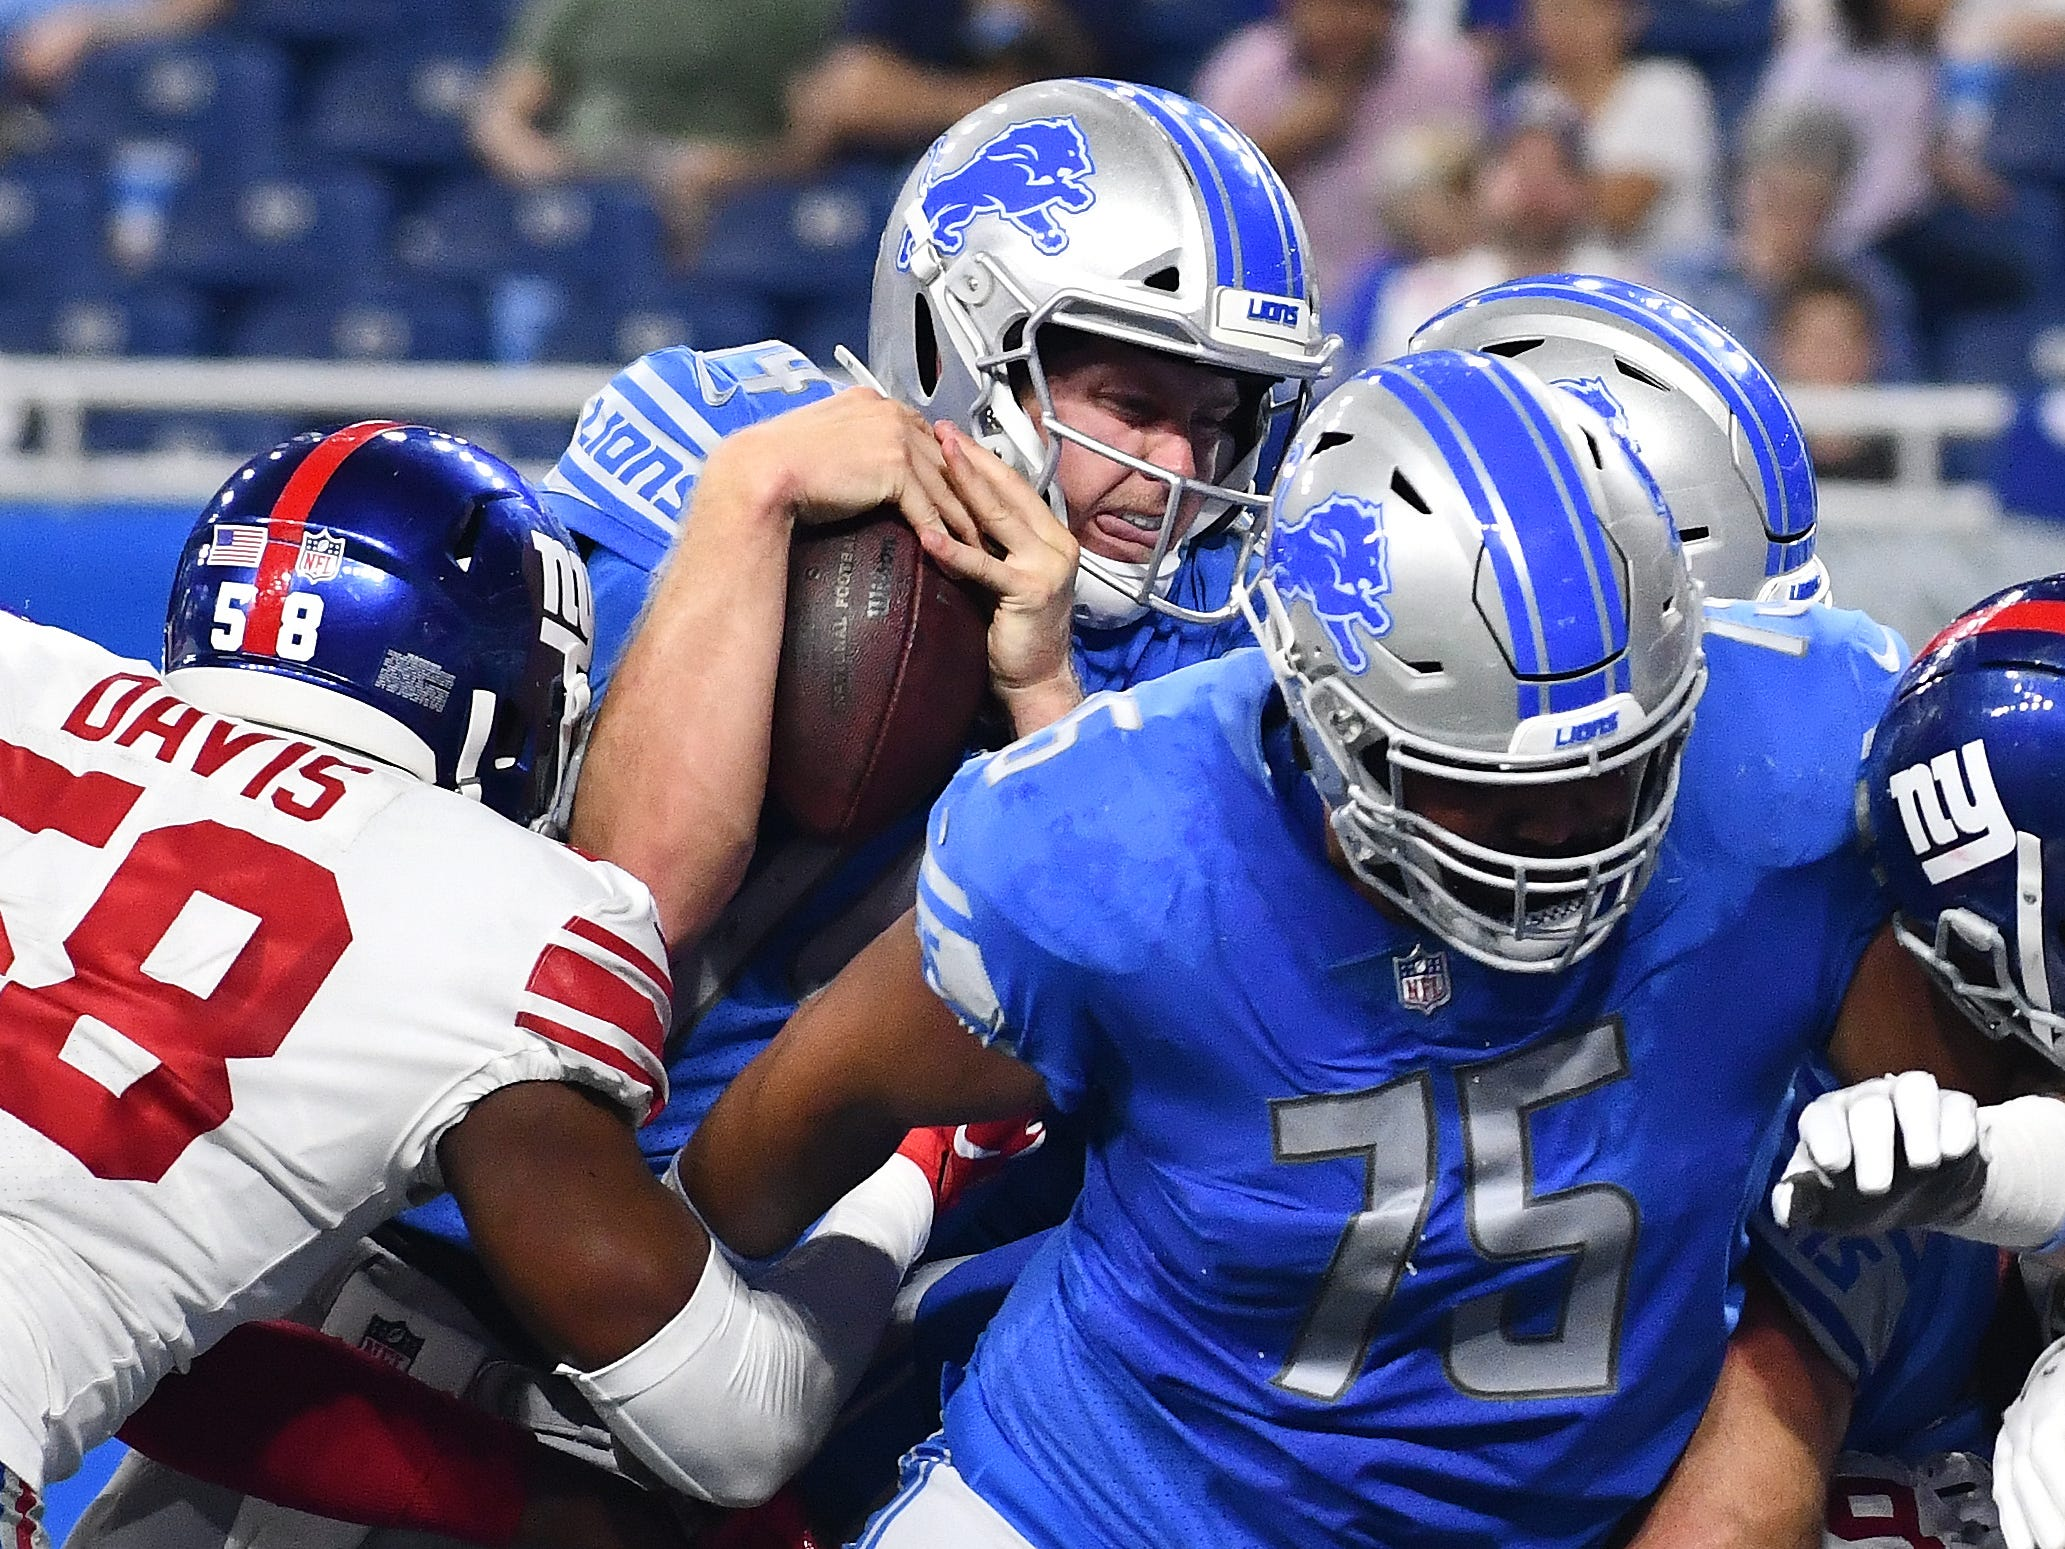 Lions quarterback Jake Rudock fights his way into the end zone for a touchdown in the fourth quarter.